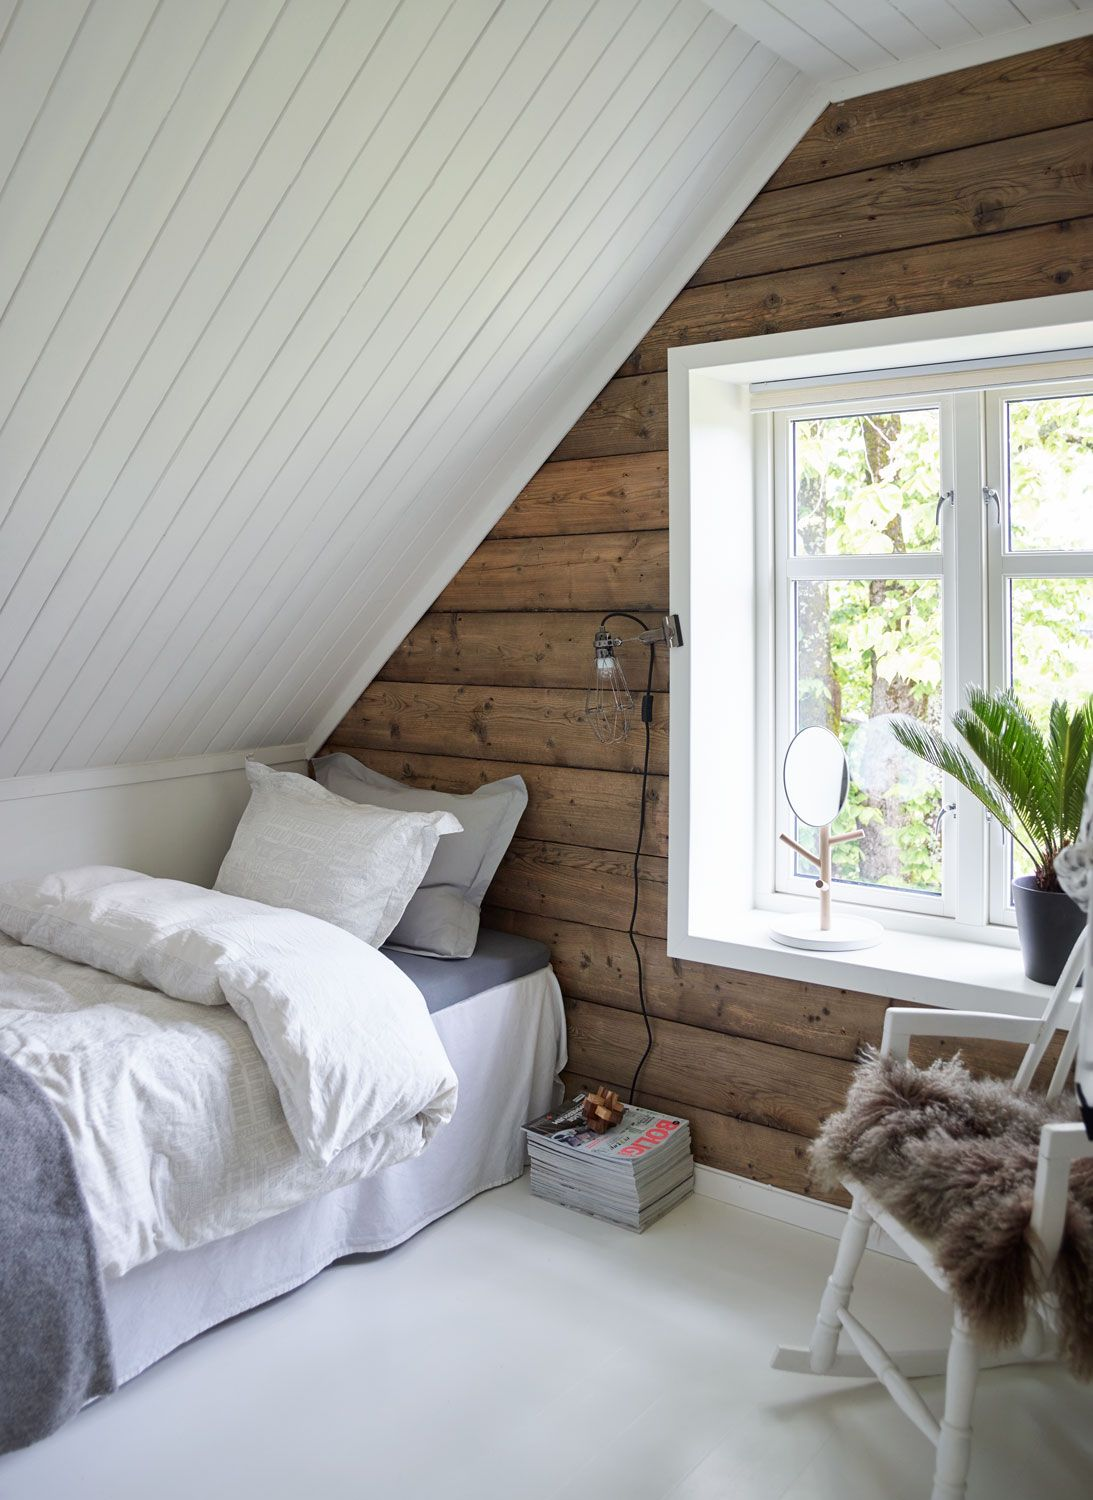 Attic bedroom design and d cor tips bedroom pinterest for Attic room